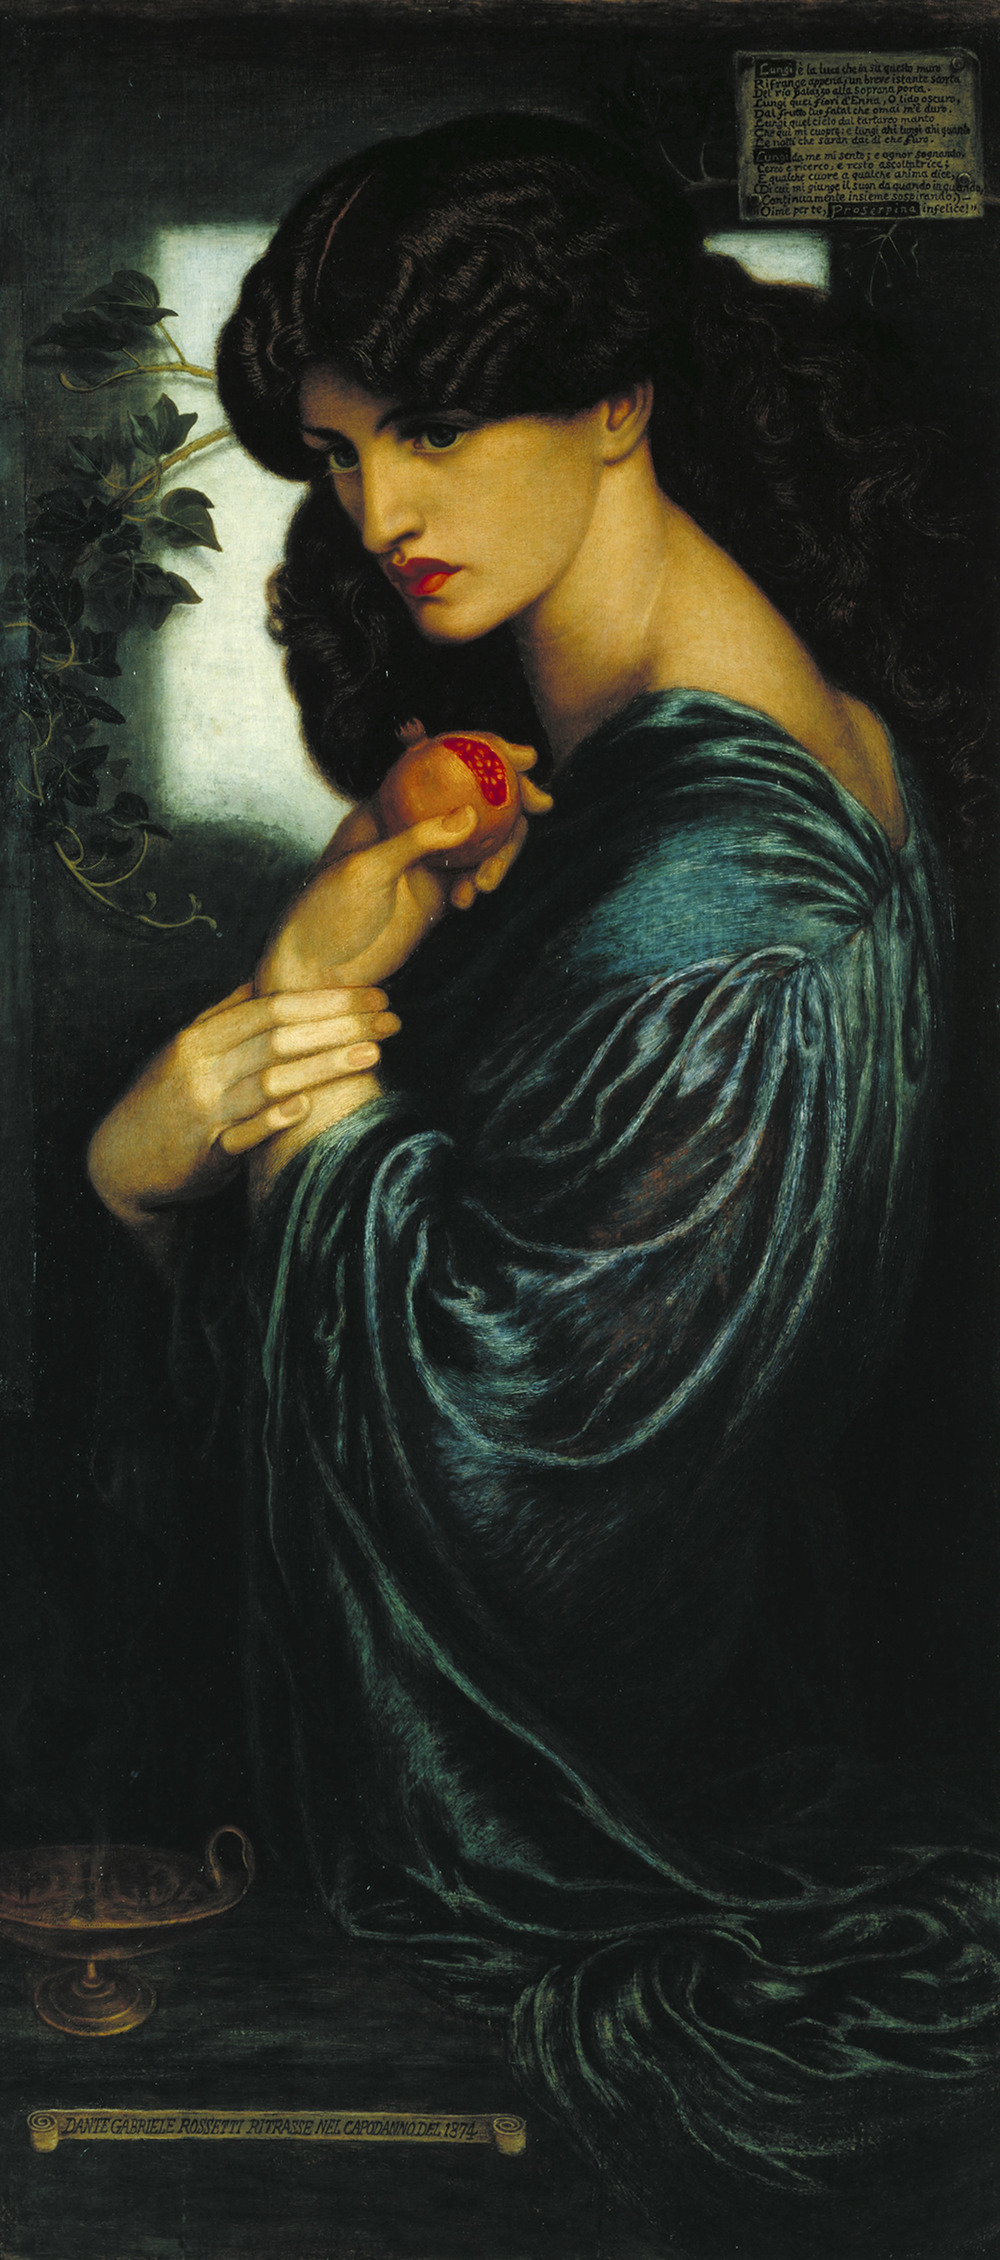 Dante Gabriel Rossetti, Proserpine 1874, Oil paint on canvas 1251 x 610 mm Tate. Presented by W. Graham Robertson 1940